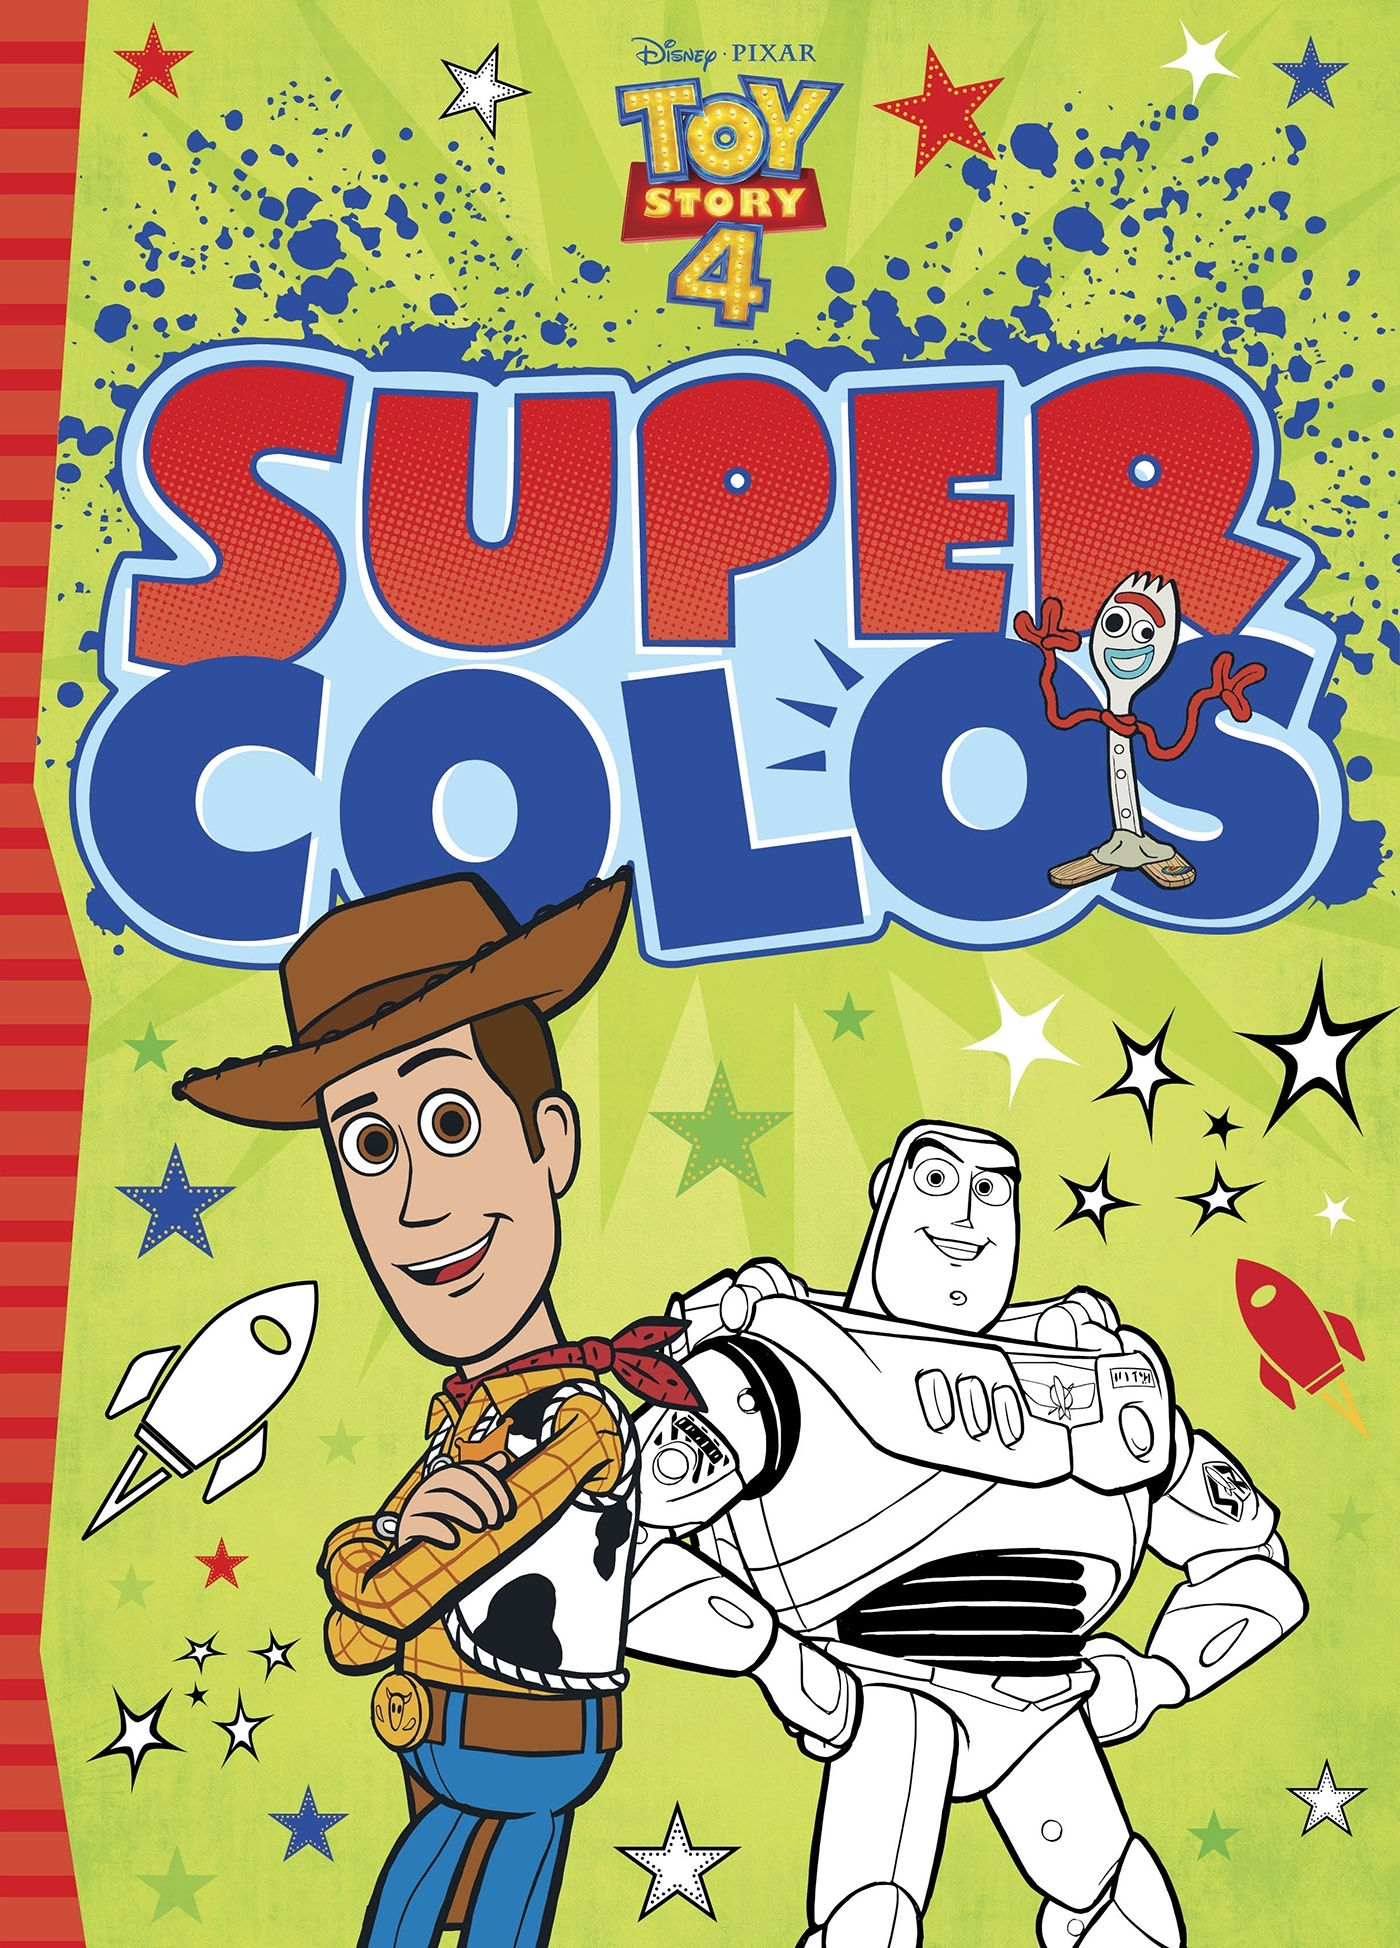 TOY STORY 4 - SUPER COLOS